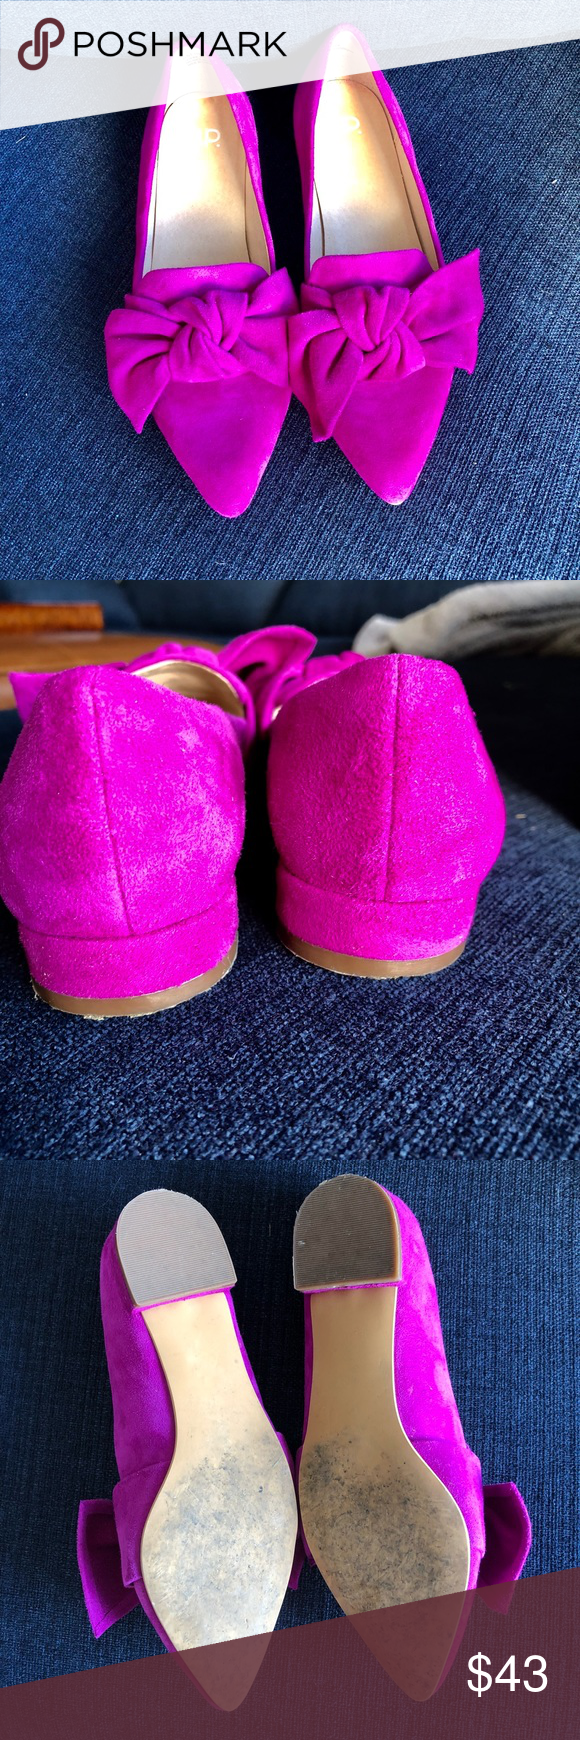 23be2260915 BP Kari bow loafer Fuchsia suede dreams make this loafer a statement shoe!  Worn once